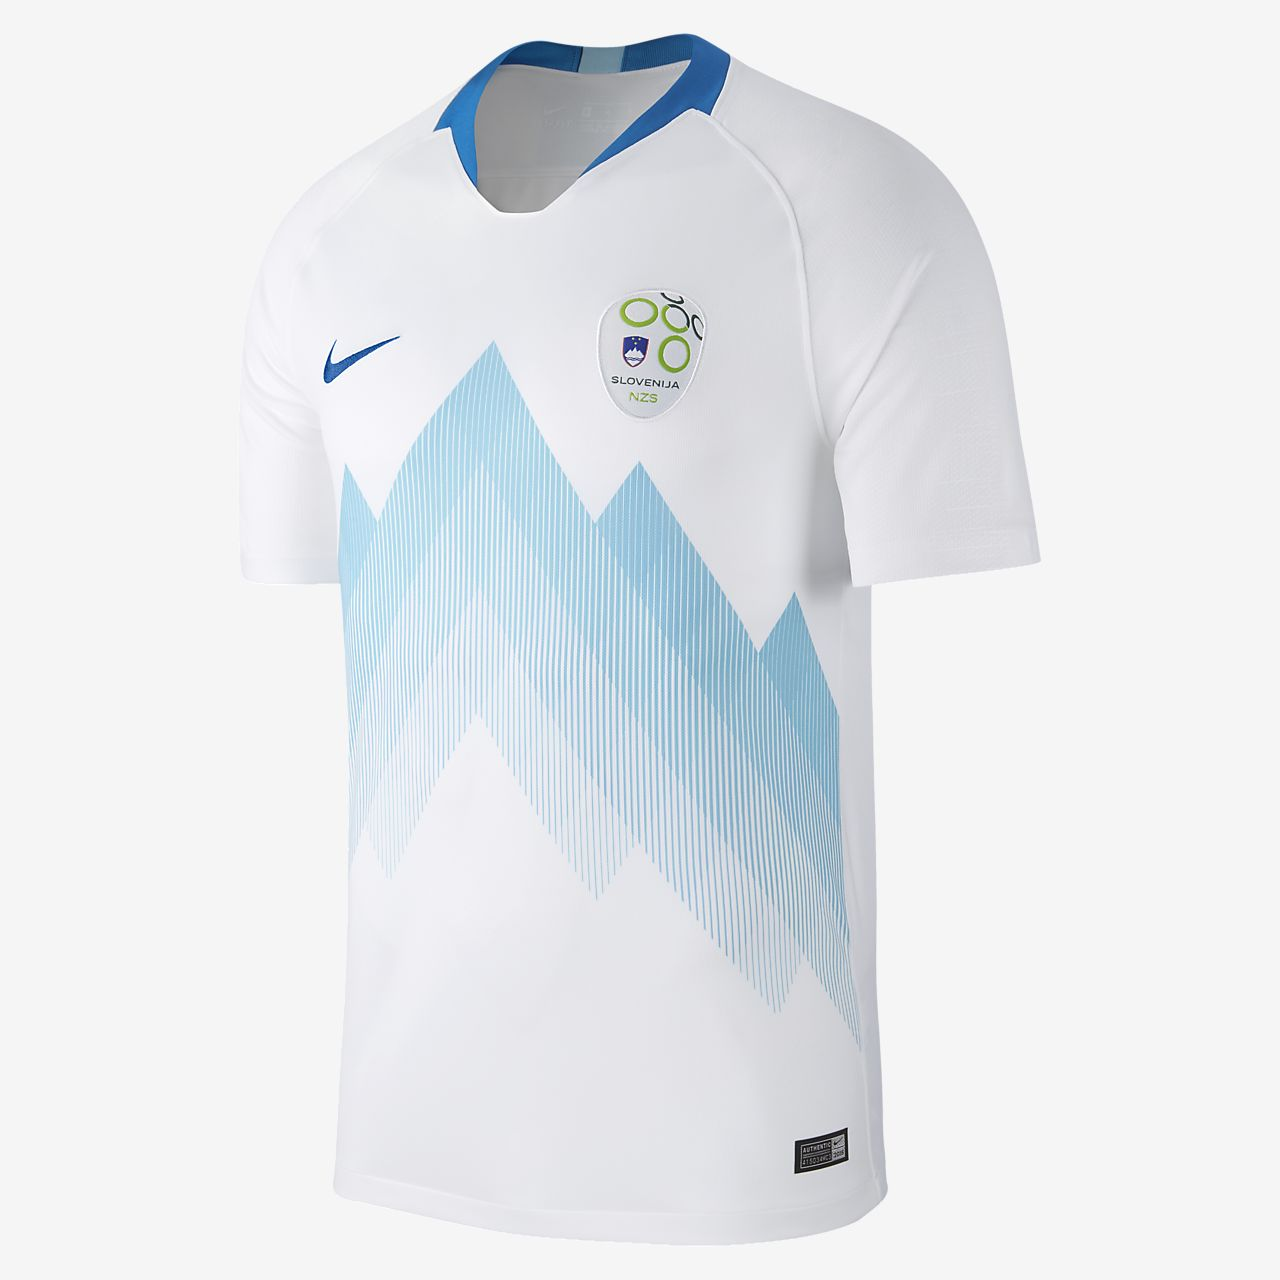 2018 Slovenia Stadium Home Men's Football Shirt